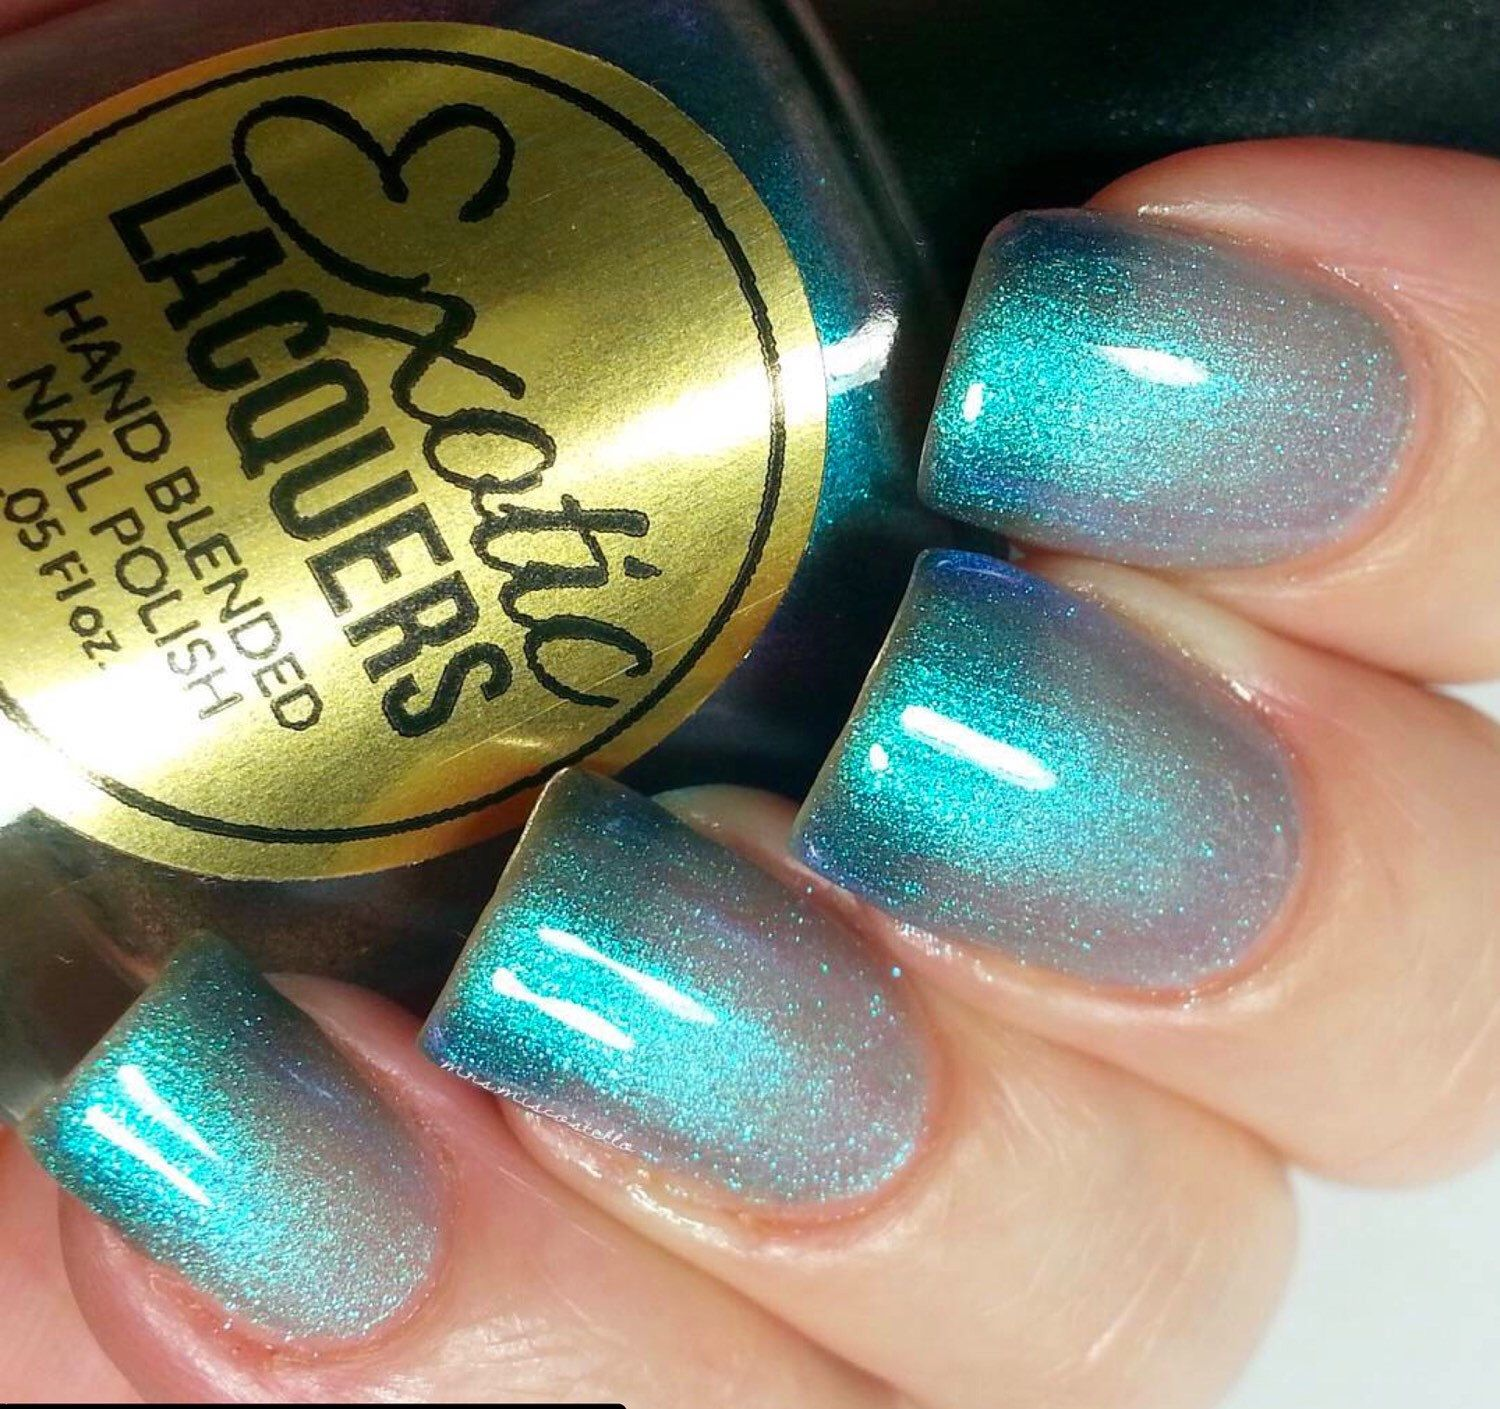 Pin by Nini Nightshade on Nails | Pinterest | Color changing nails ...